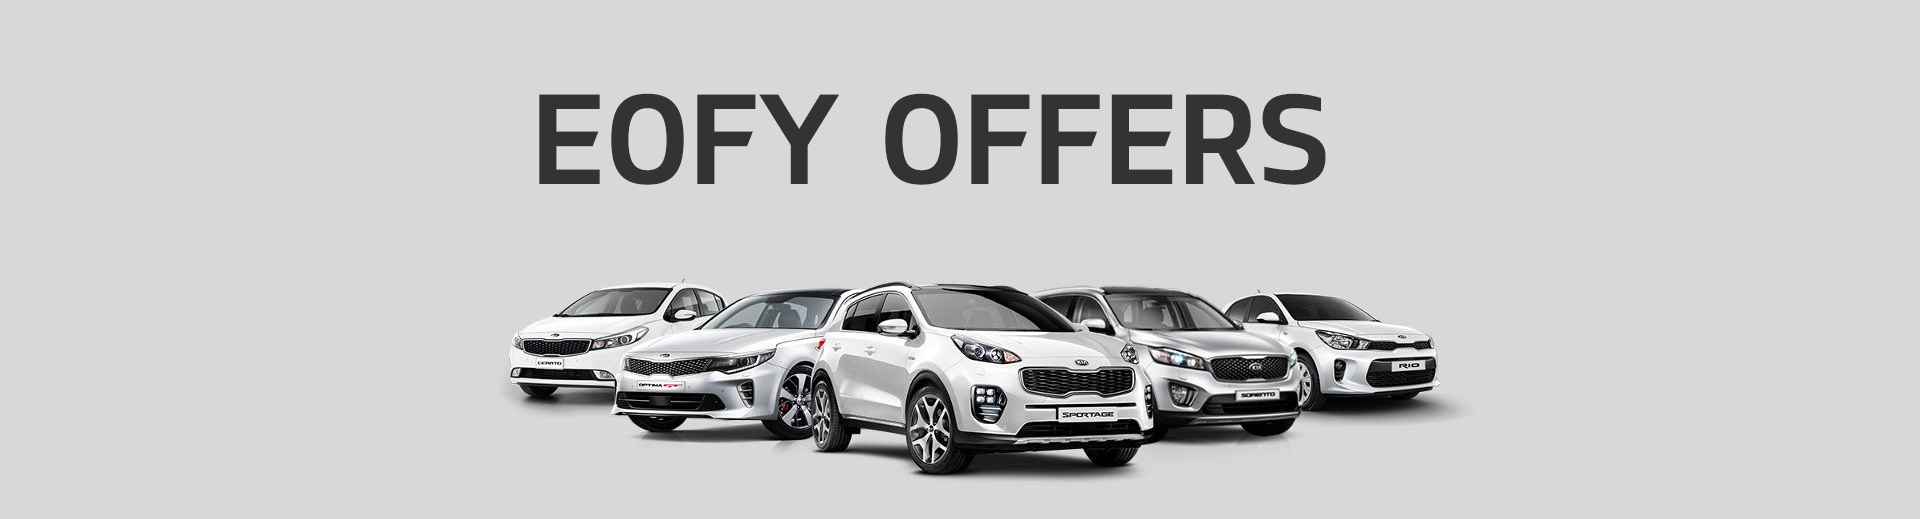 Kia - National Offer - EOFY Offers